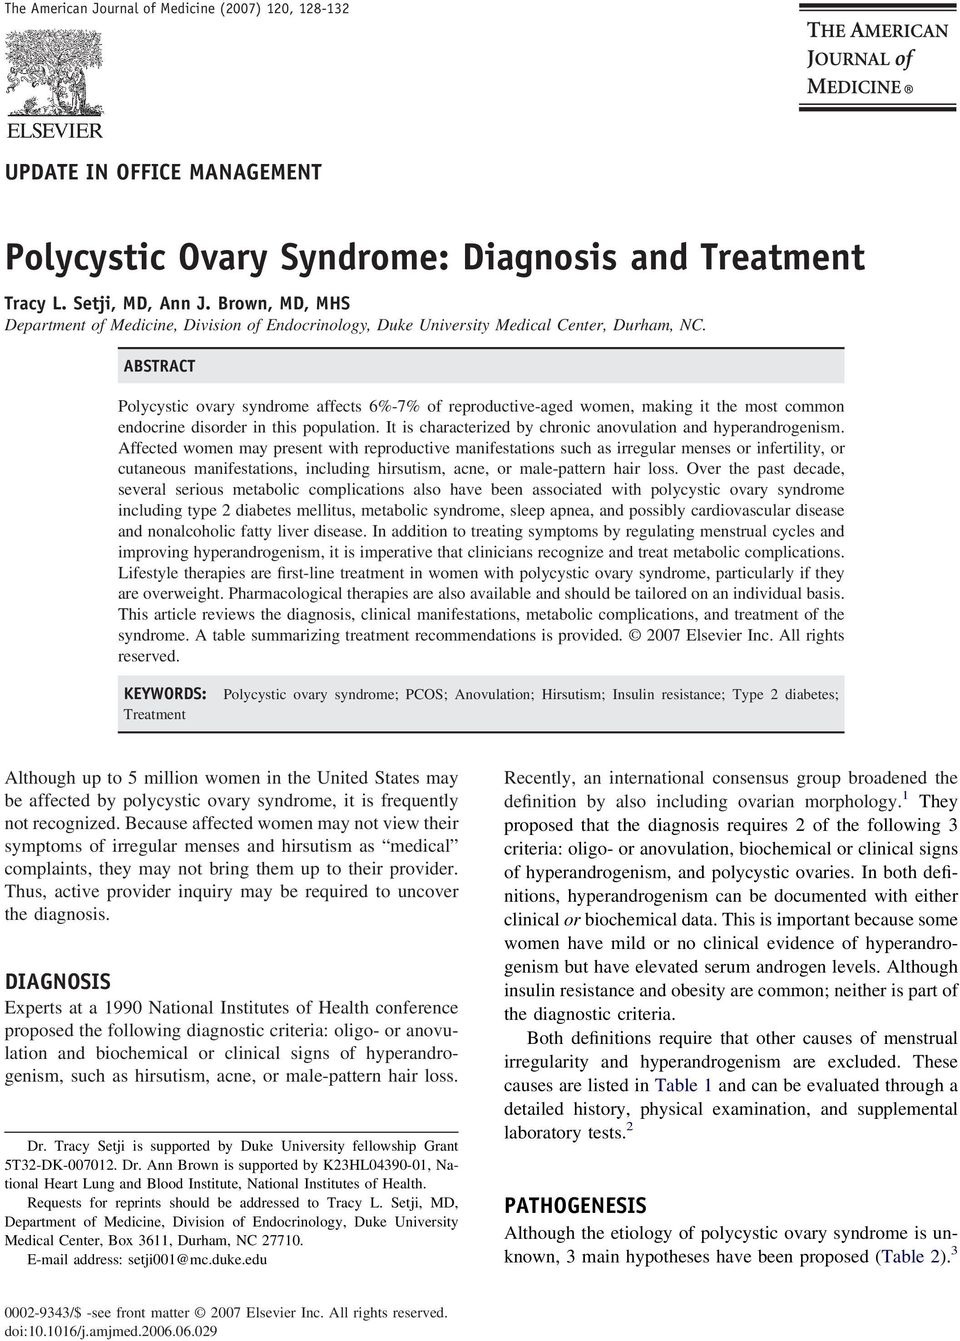 Polycystic Ovary Syndrome: Diagnosis and Treatment - PDF